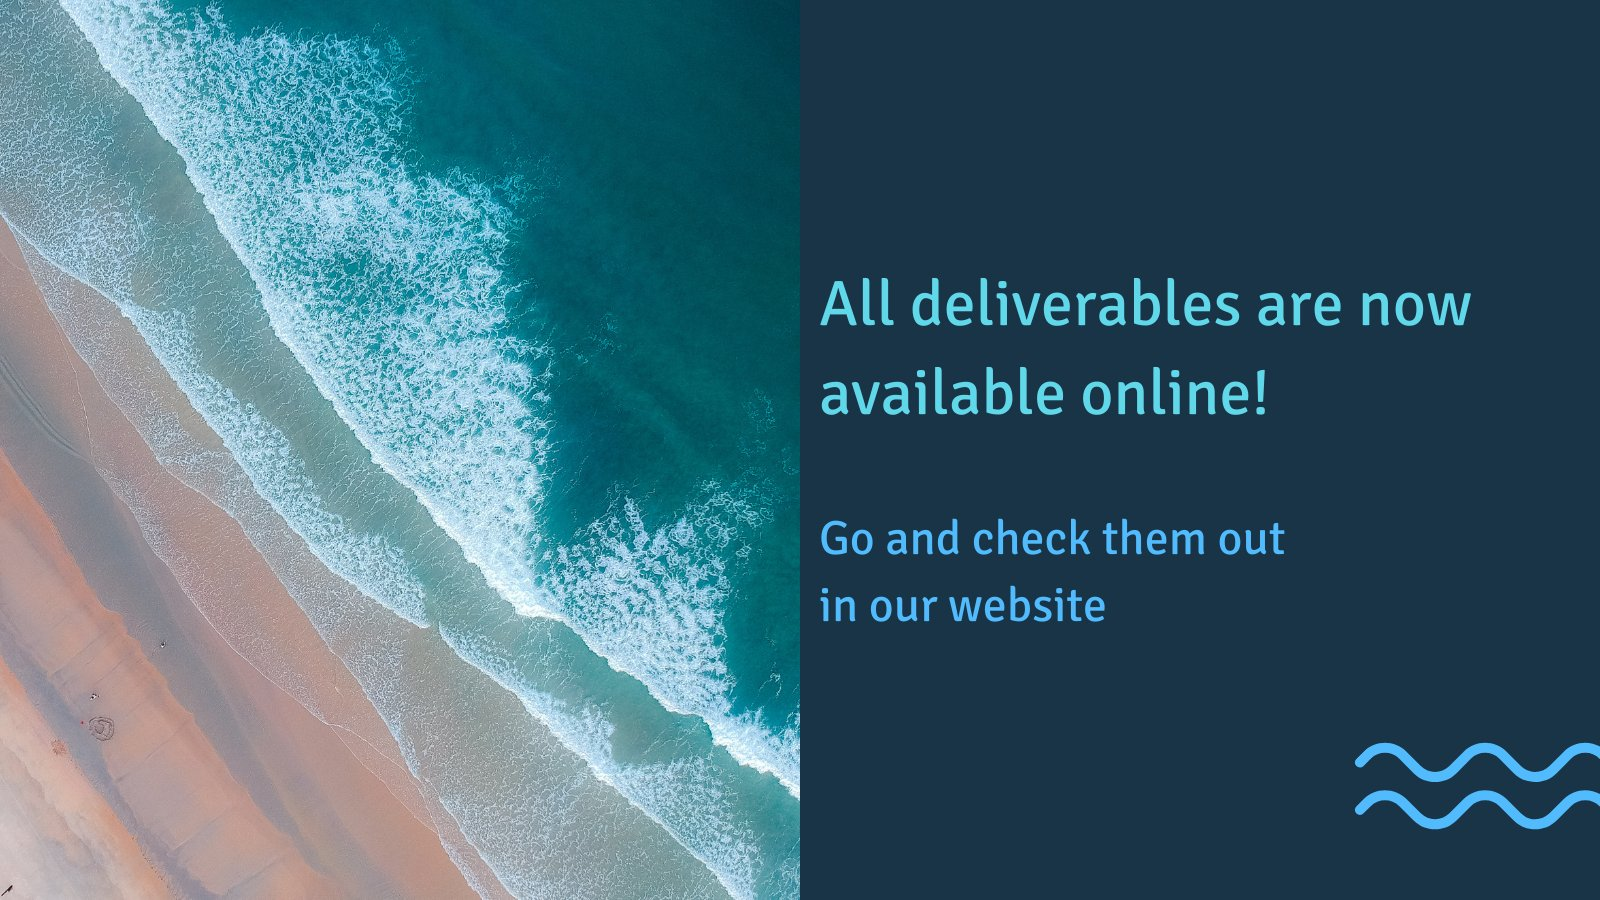 All deliverables are available online!